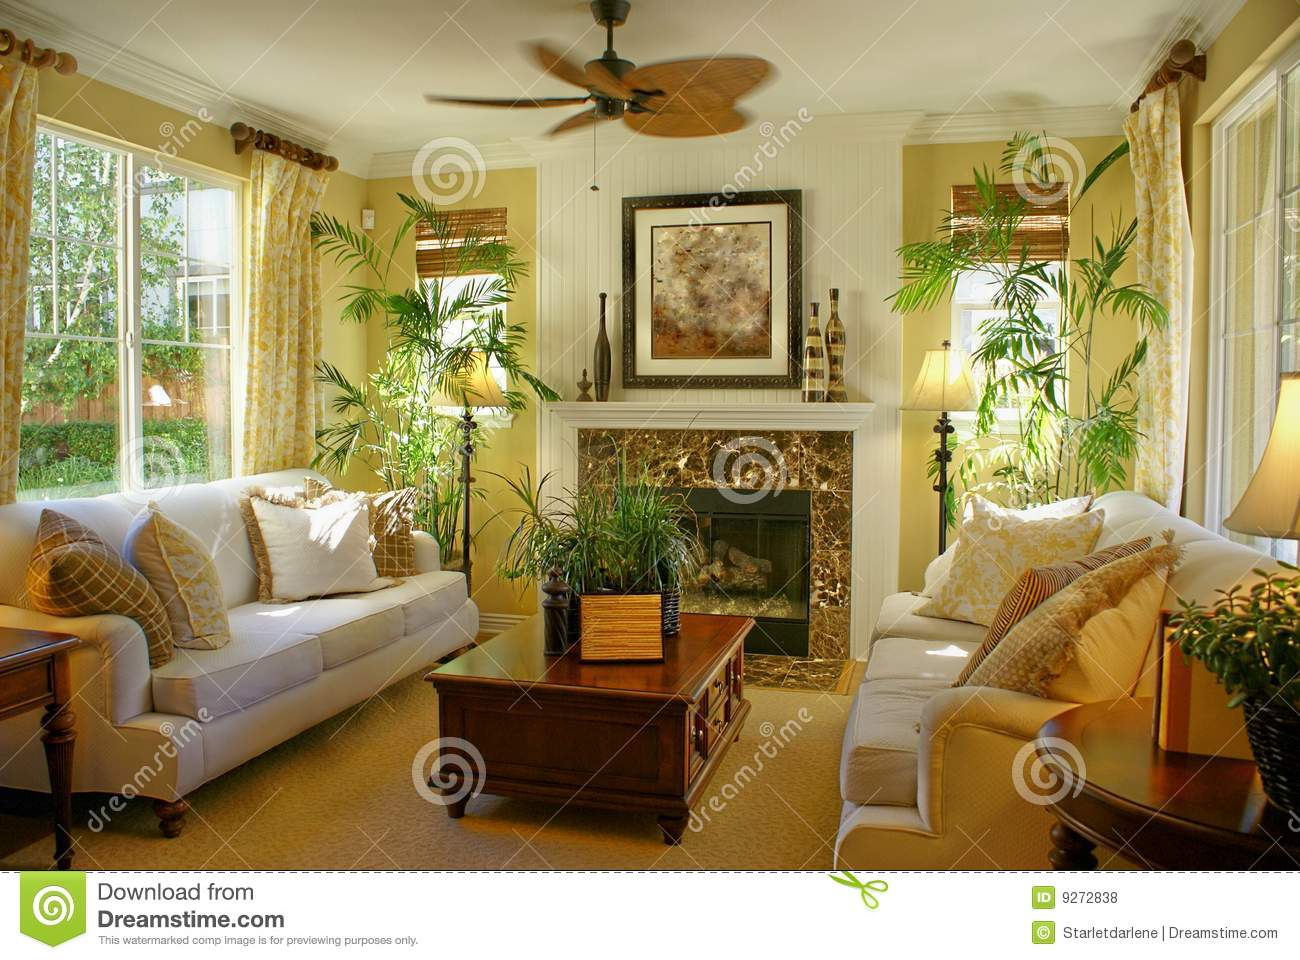 Royalty free stock image wallpaper 2 yellow living room for Yellow living room wallpaper